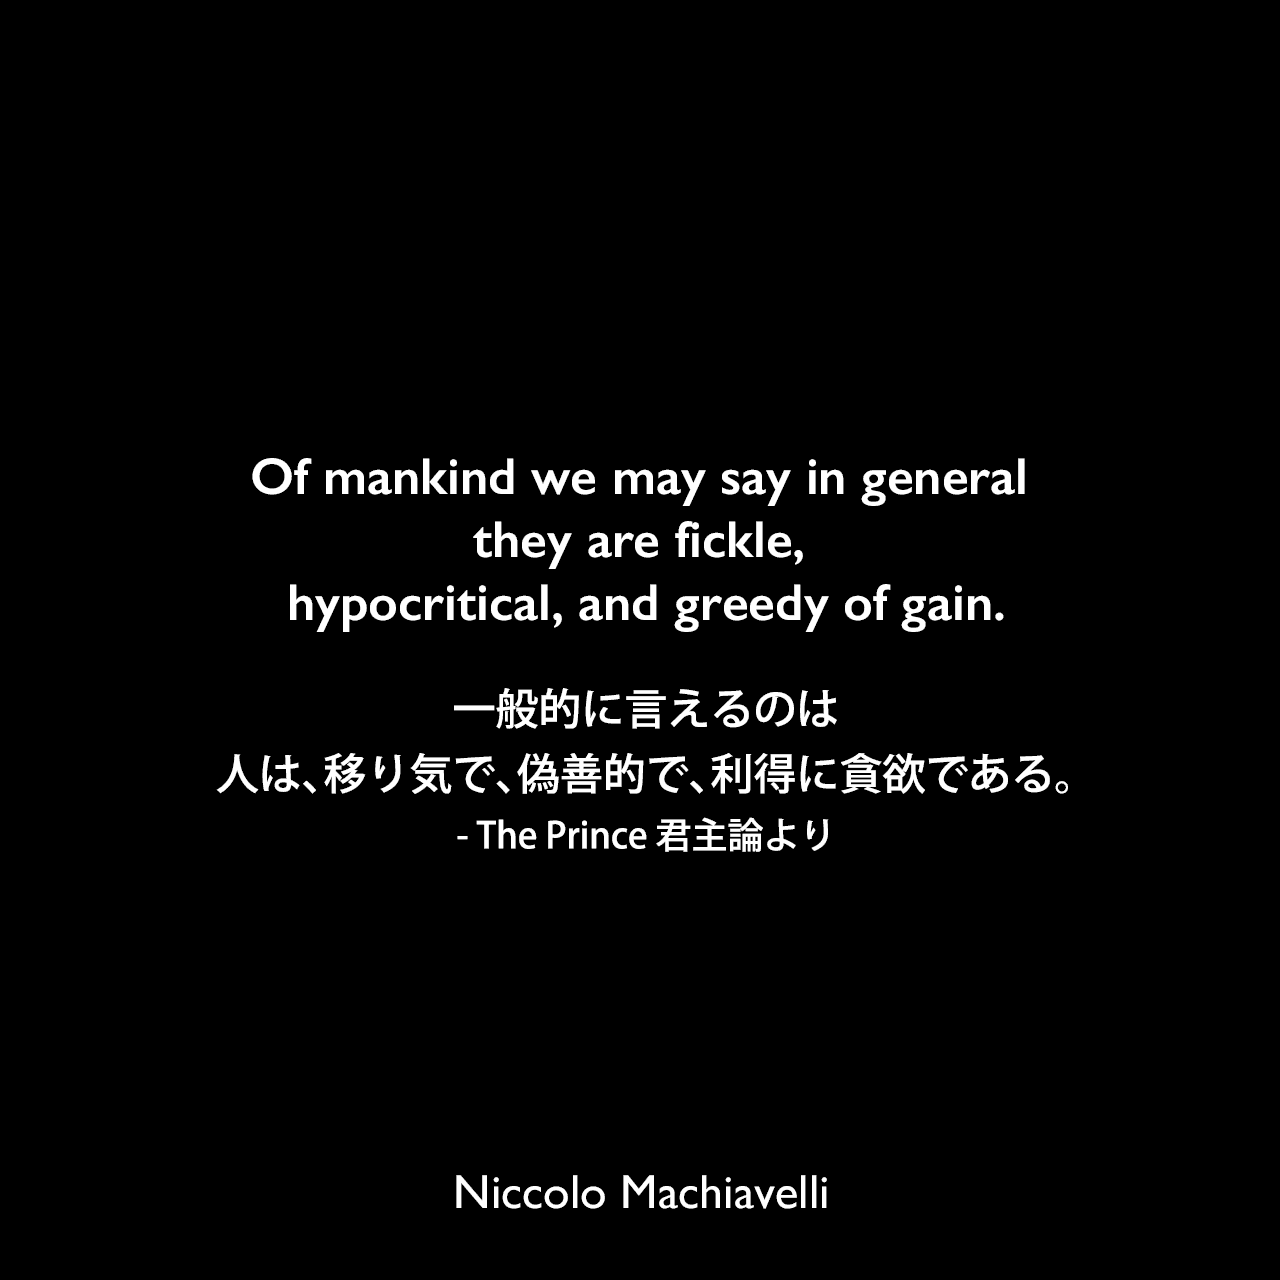 Of mankind we may say in general they are fickle, hypocritical, and greedy of gain.一般的に言えるのは、人は、移り気で、偽善的で、利得に貪欲である。- The Prince 君主論よりNiccolo Machiavelli